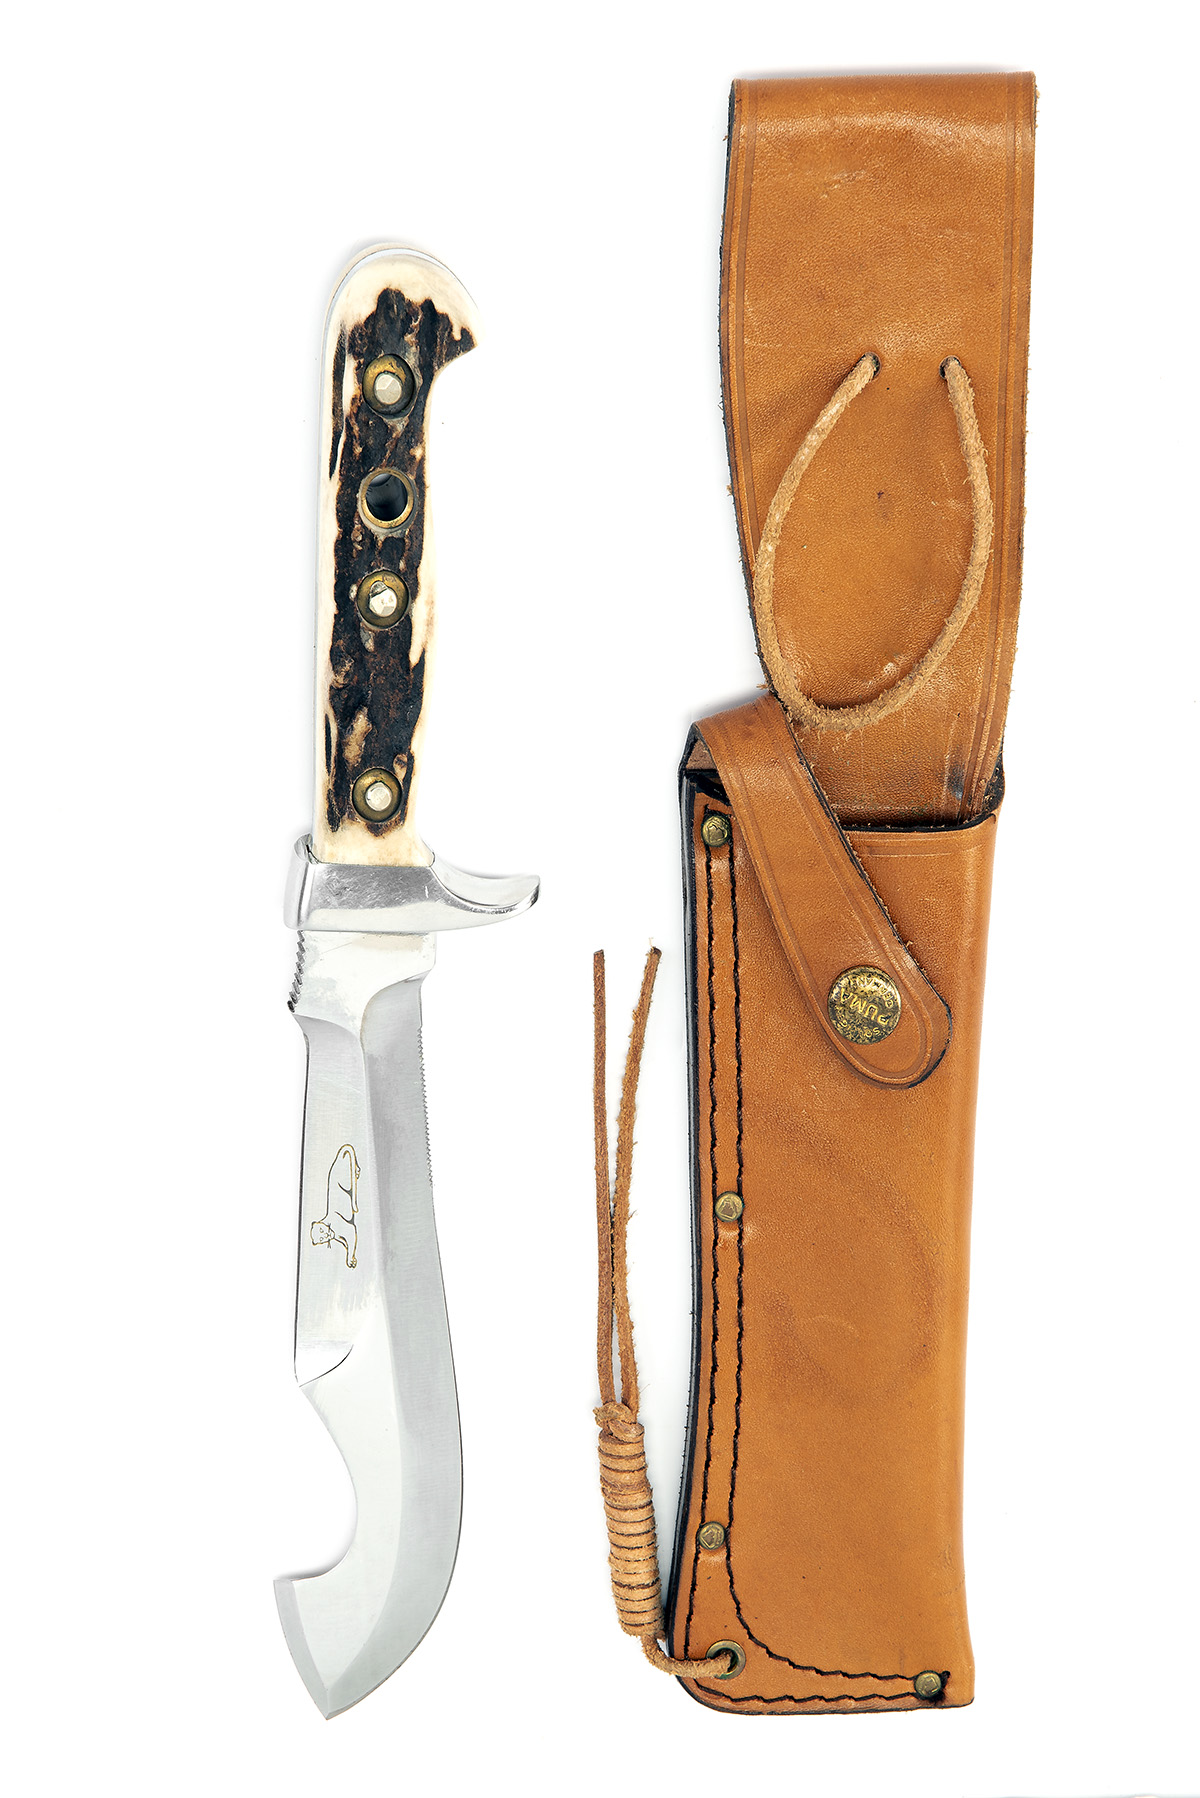 PUMA, GERMANY A SCARCE CASED SPORTING-KNIFE, MODEL '6374 COUGAR', serial no. 83774, for 1977, the - Image 2 of 2